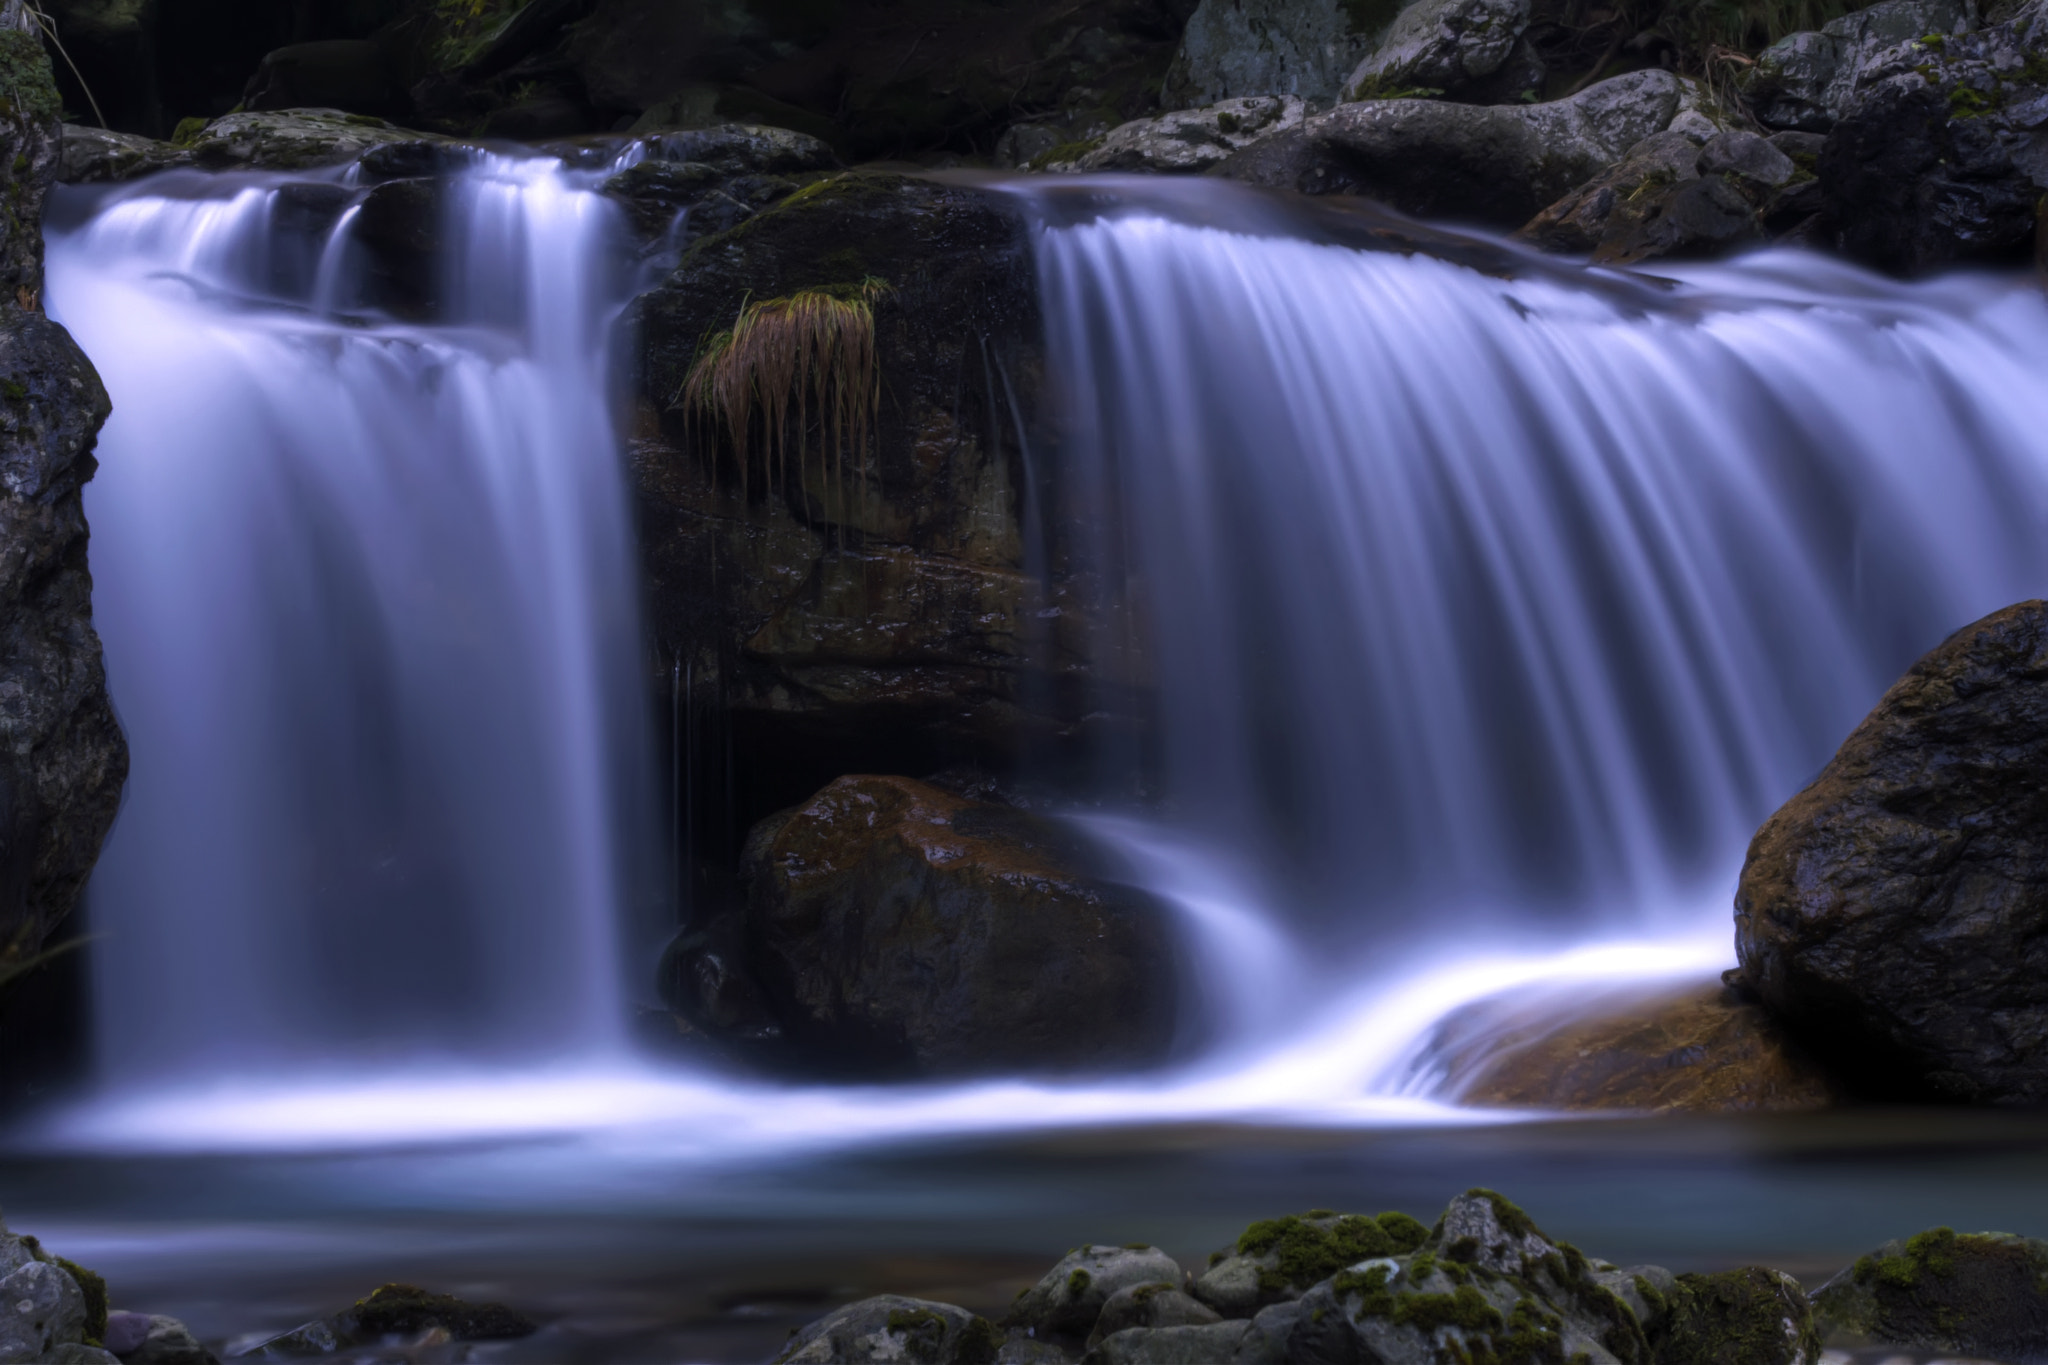 Photograph Light water by Devid Strazzante on 500px